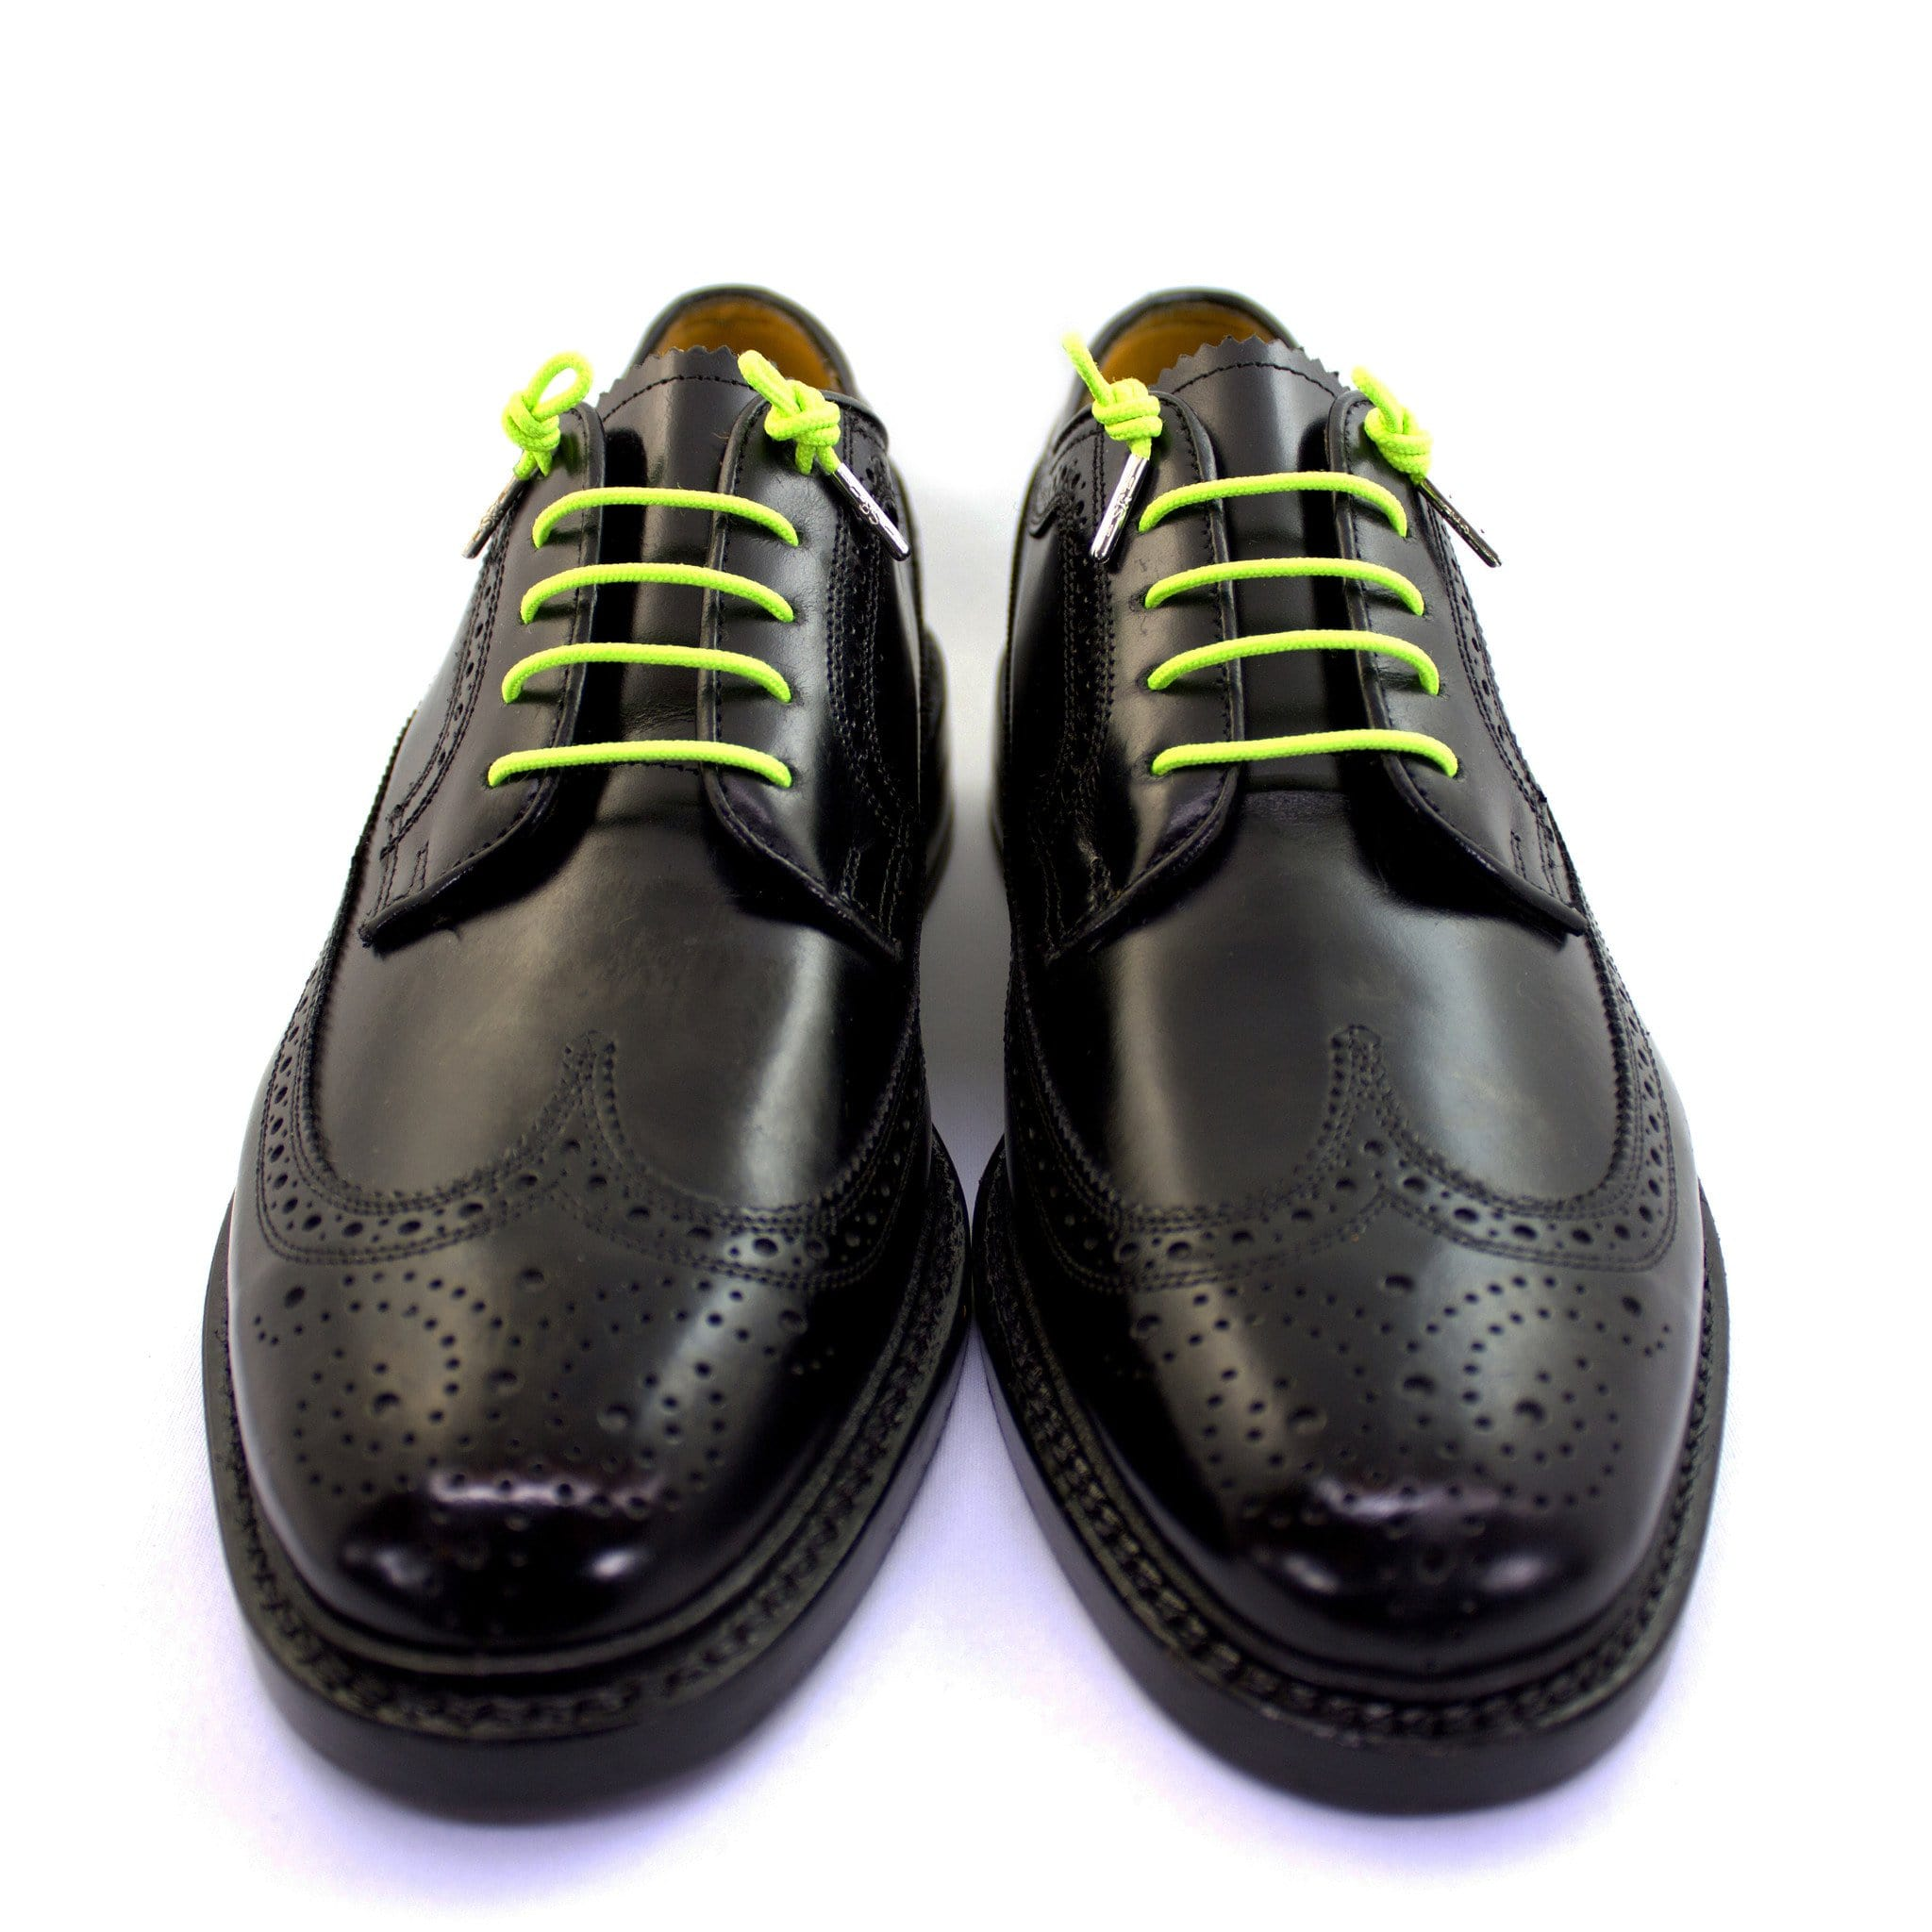 "Neon green laces for dress shoes, Length: 32""/81cm-Stolen Riches"